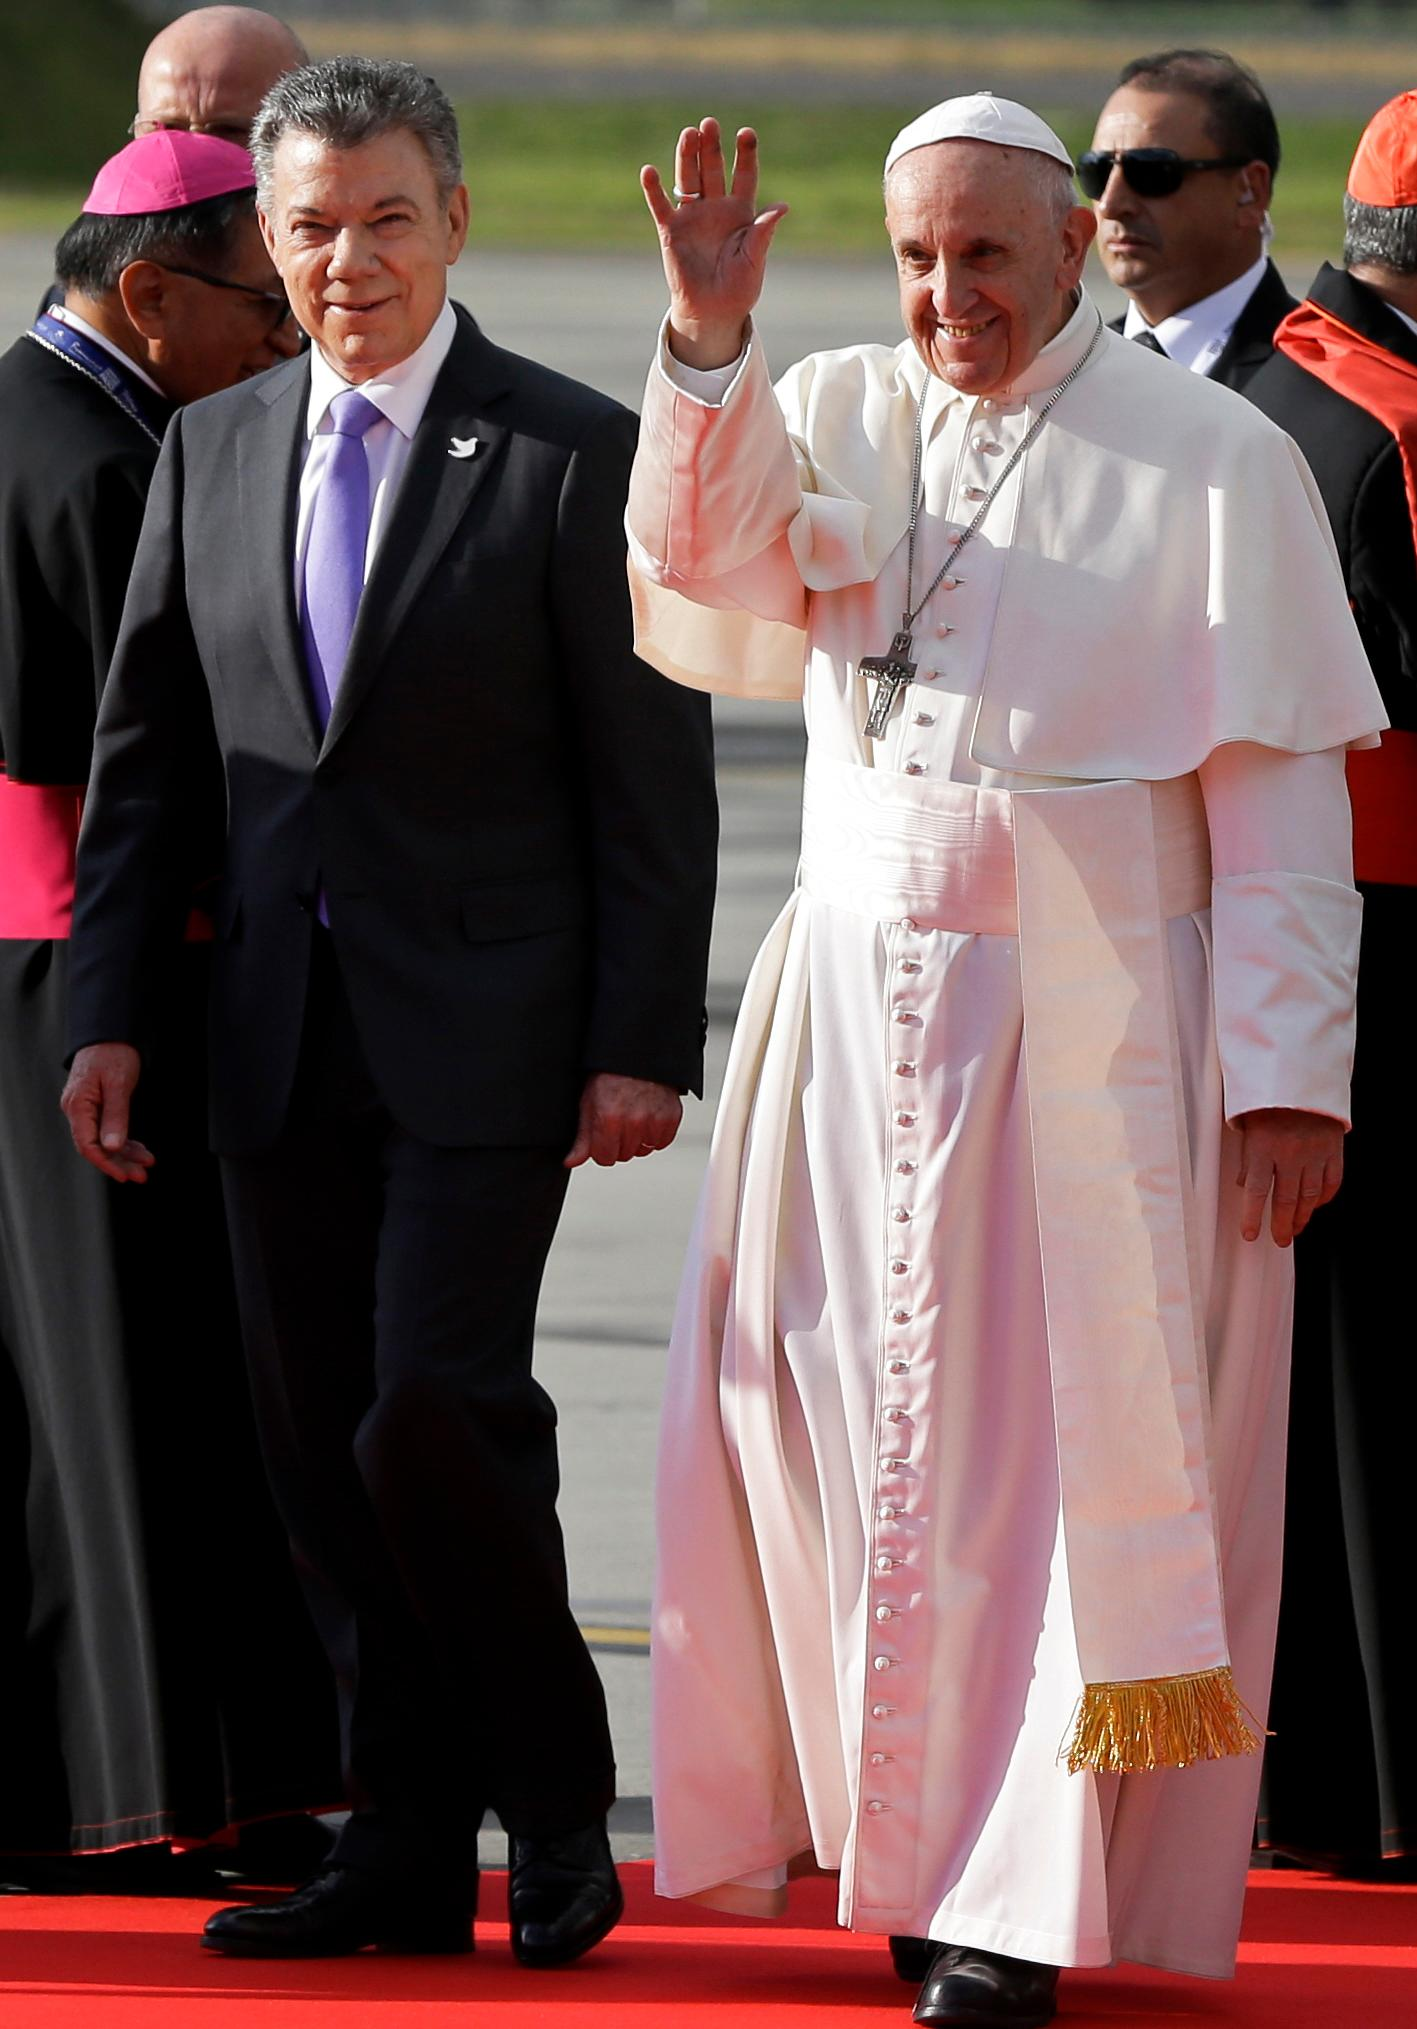 Pope Francis waves next to Colombia's President Juan Manuel Santos as he arrives to El Dorado airport in Bogota, Colombia, Wednesday, Sept. 6, 2017. Pope Francis has arrived in Colombia for a five-day visit. (AP Photo/Ricardo Mazalan)